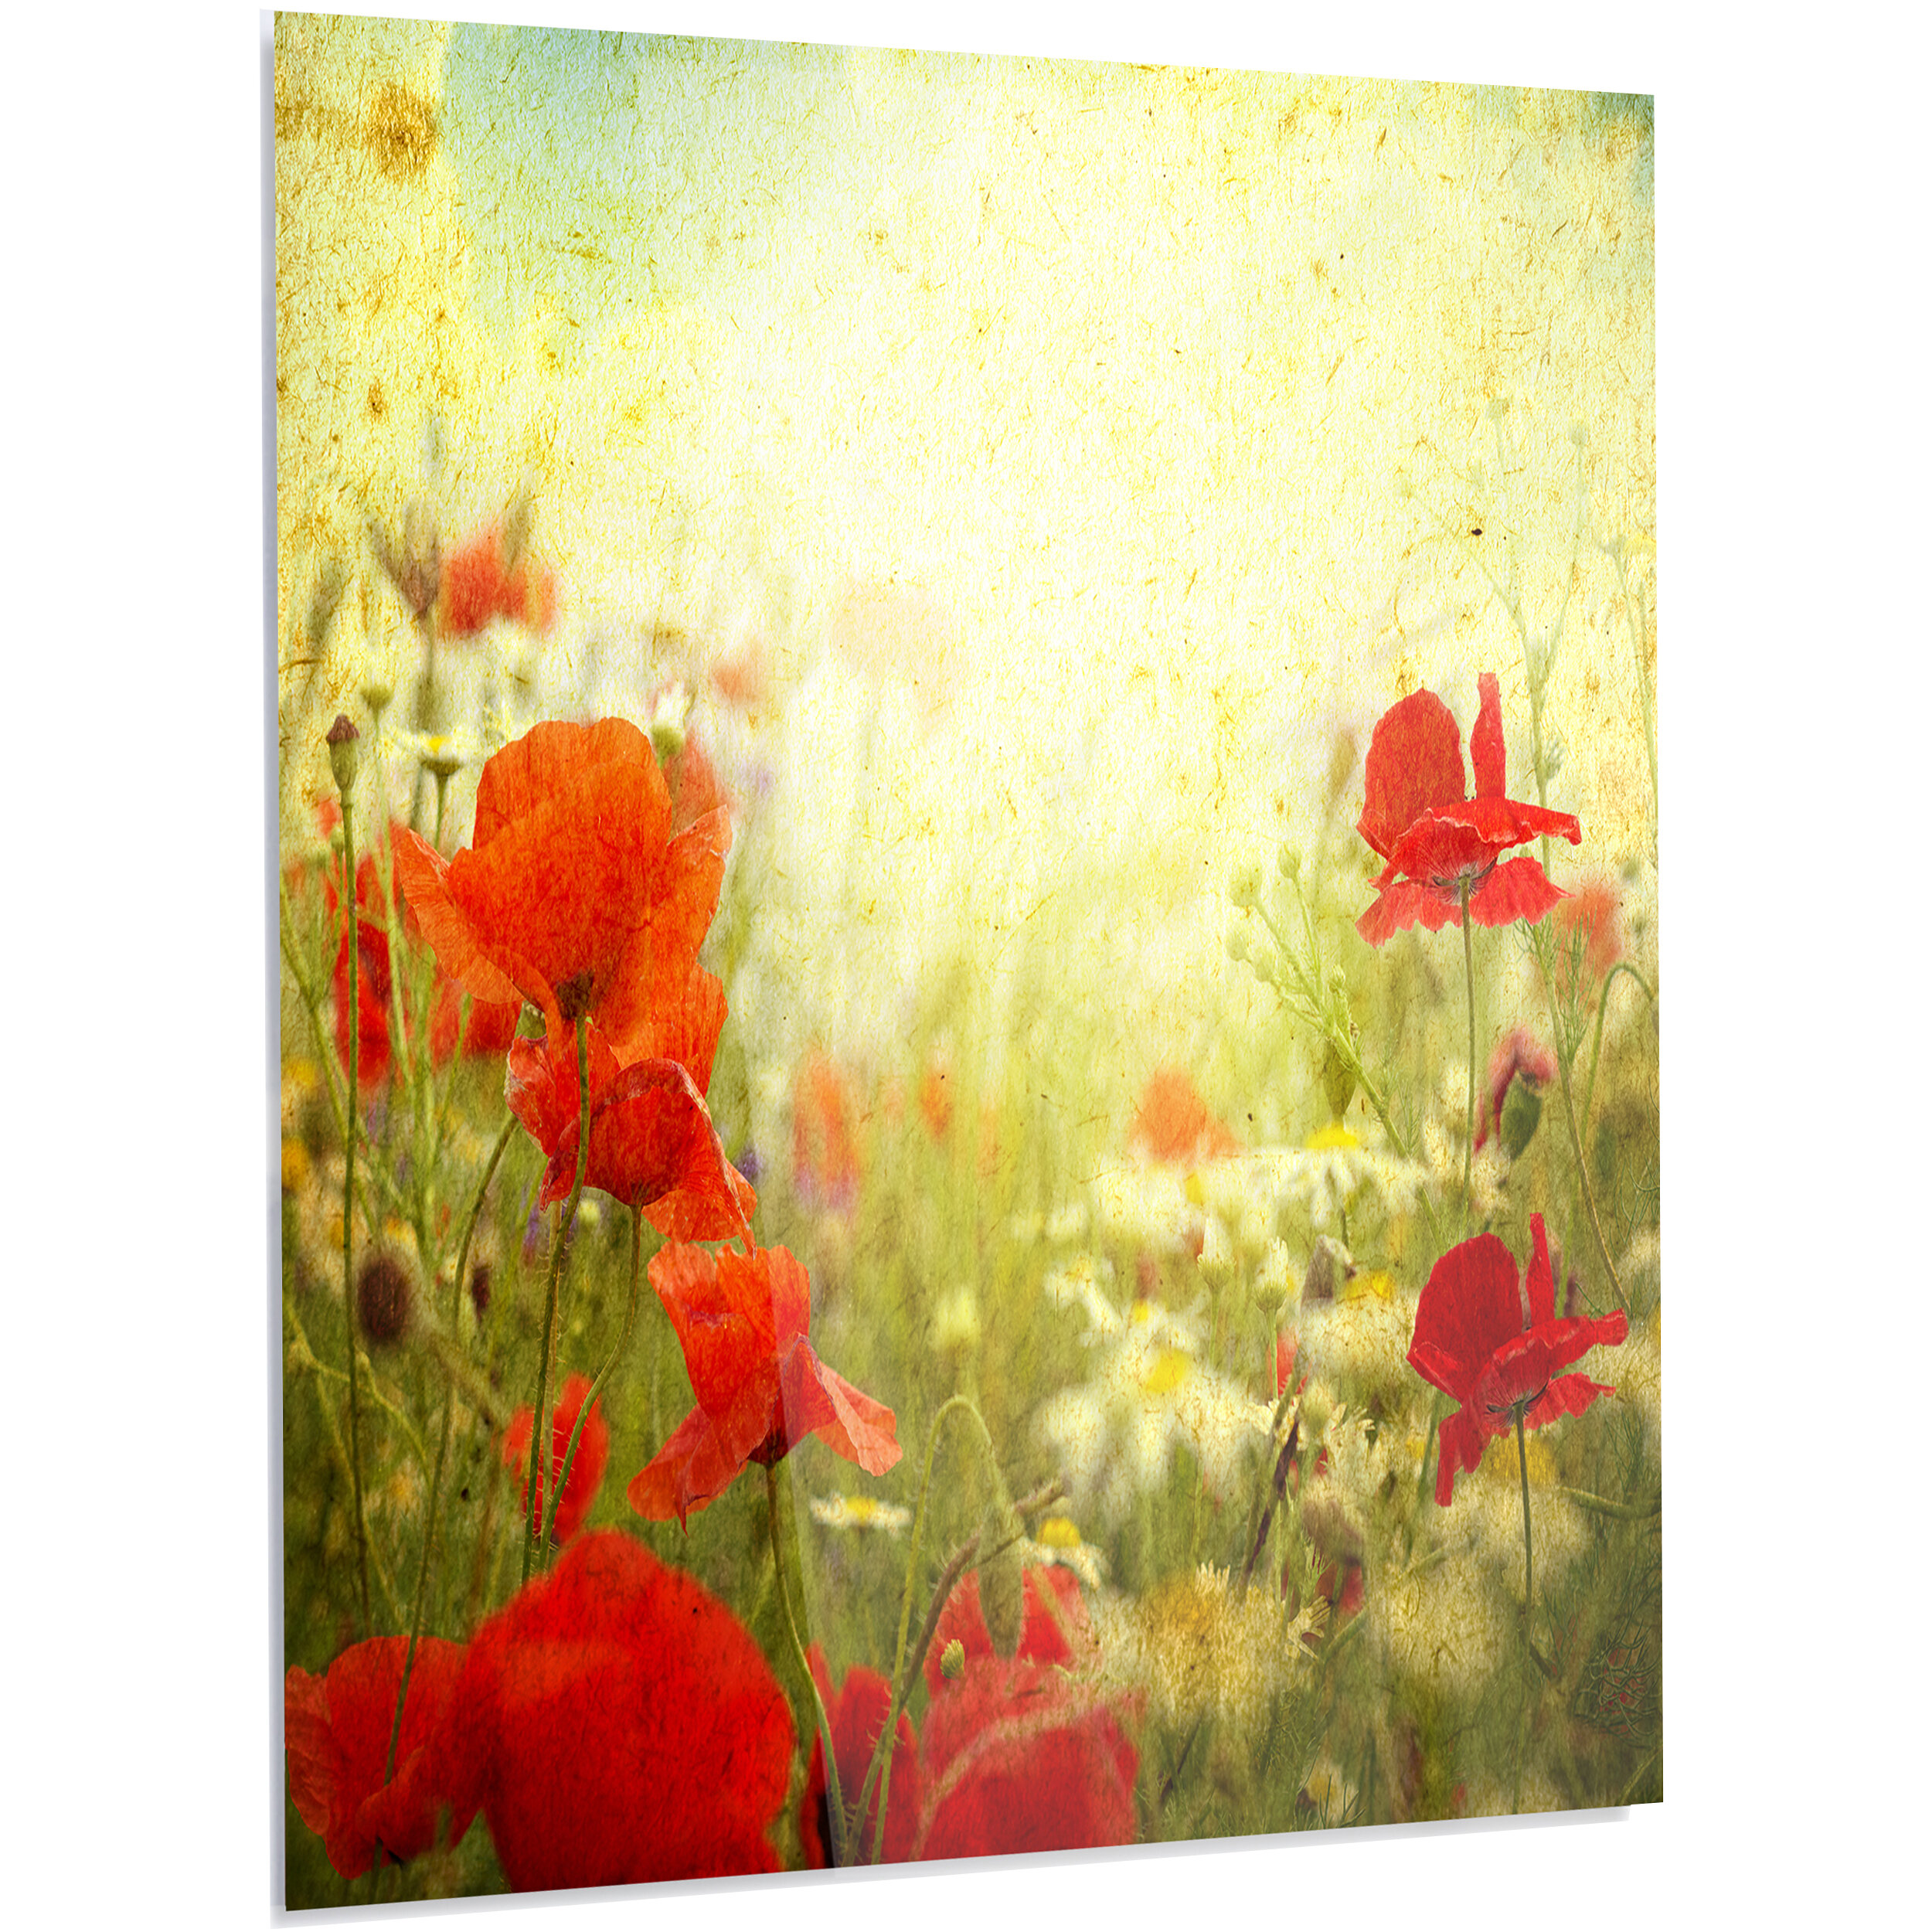 DesignArt \'Grunge Background with Red Poppies\' Graphic Art on Metal ...